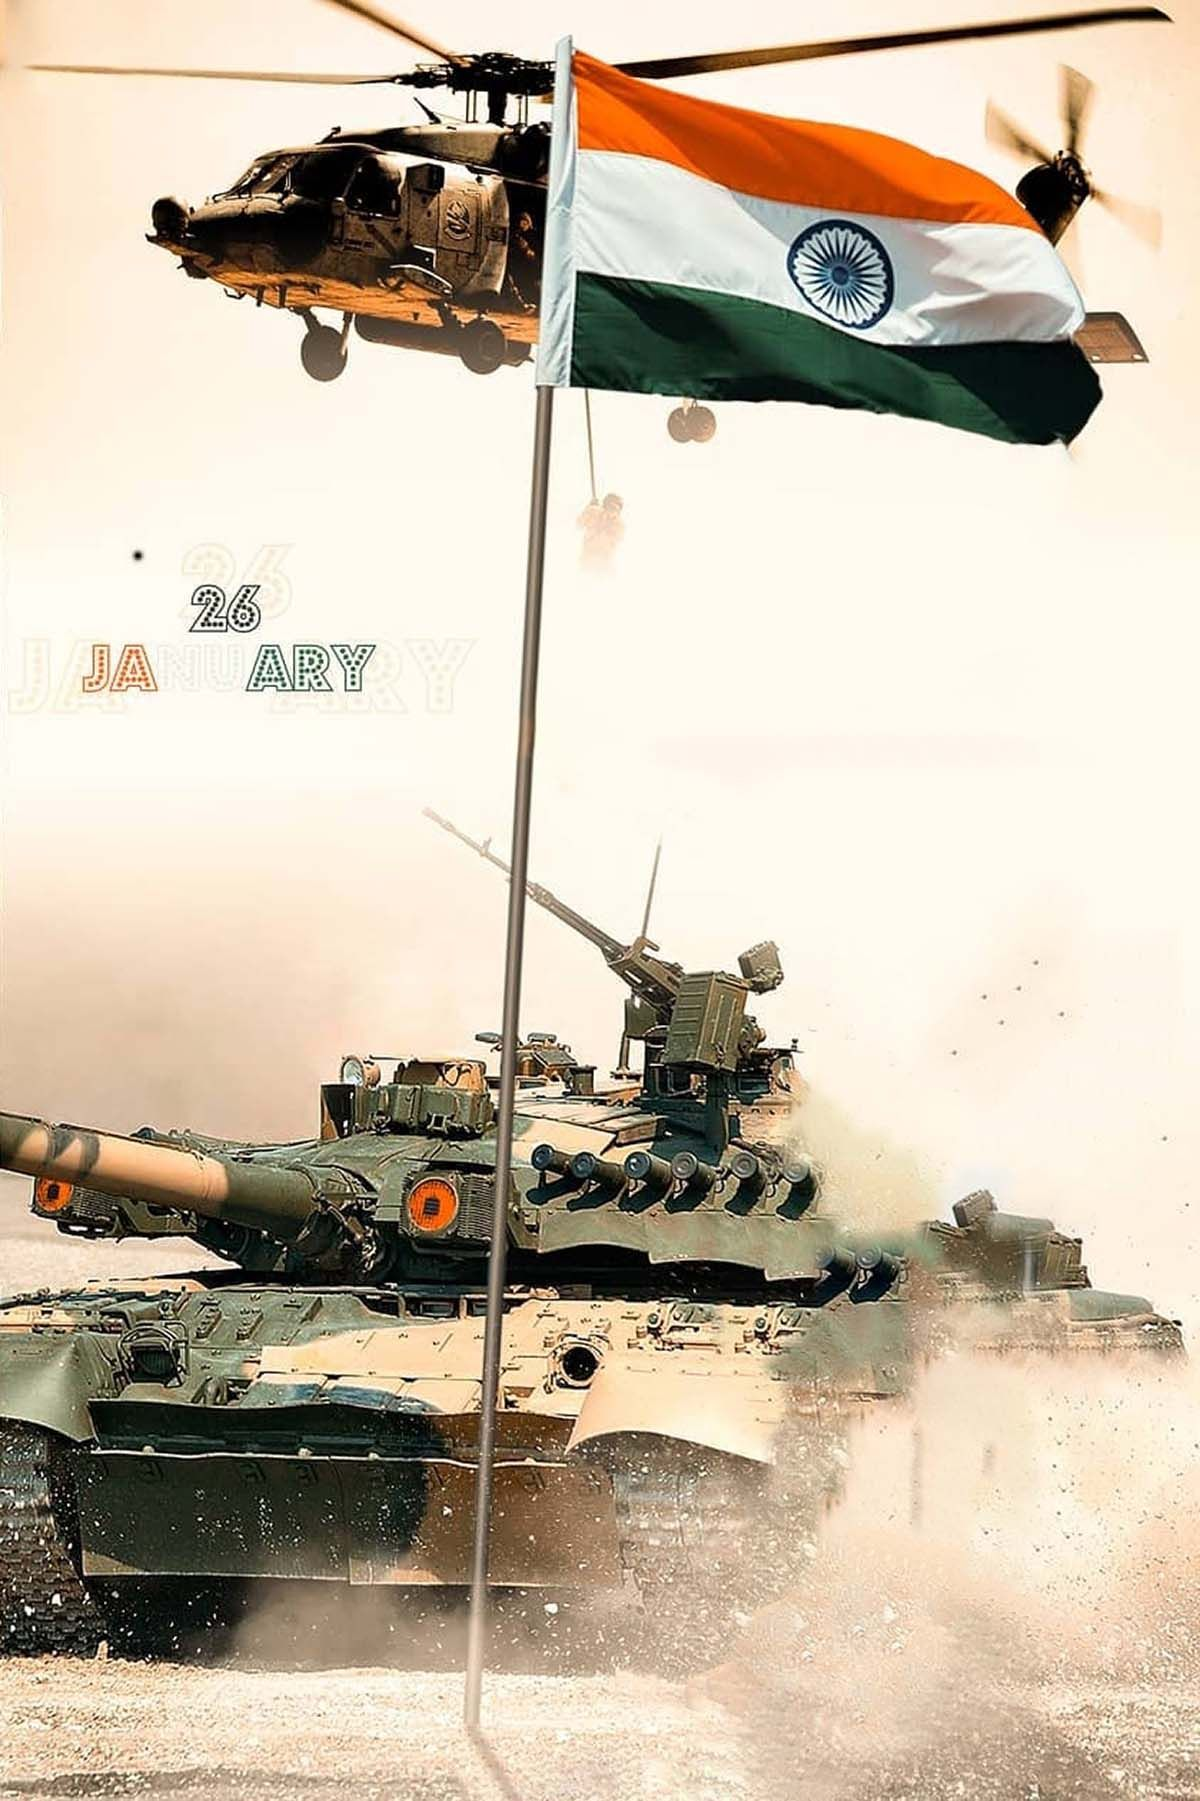 26 January Editing Background 2020 In 2021 January Background Editing Background Republic Day Photos 26 january 2021 indian army image